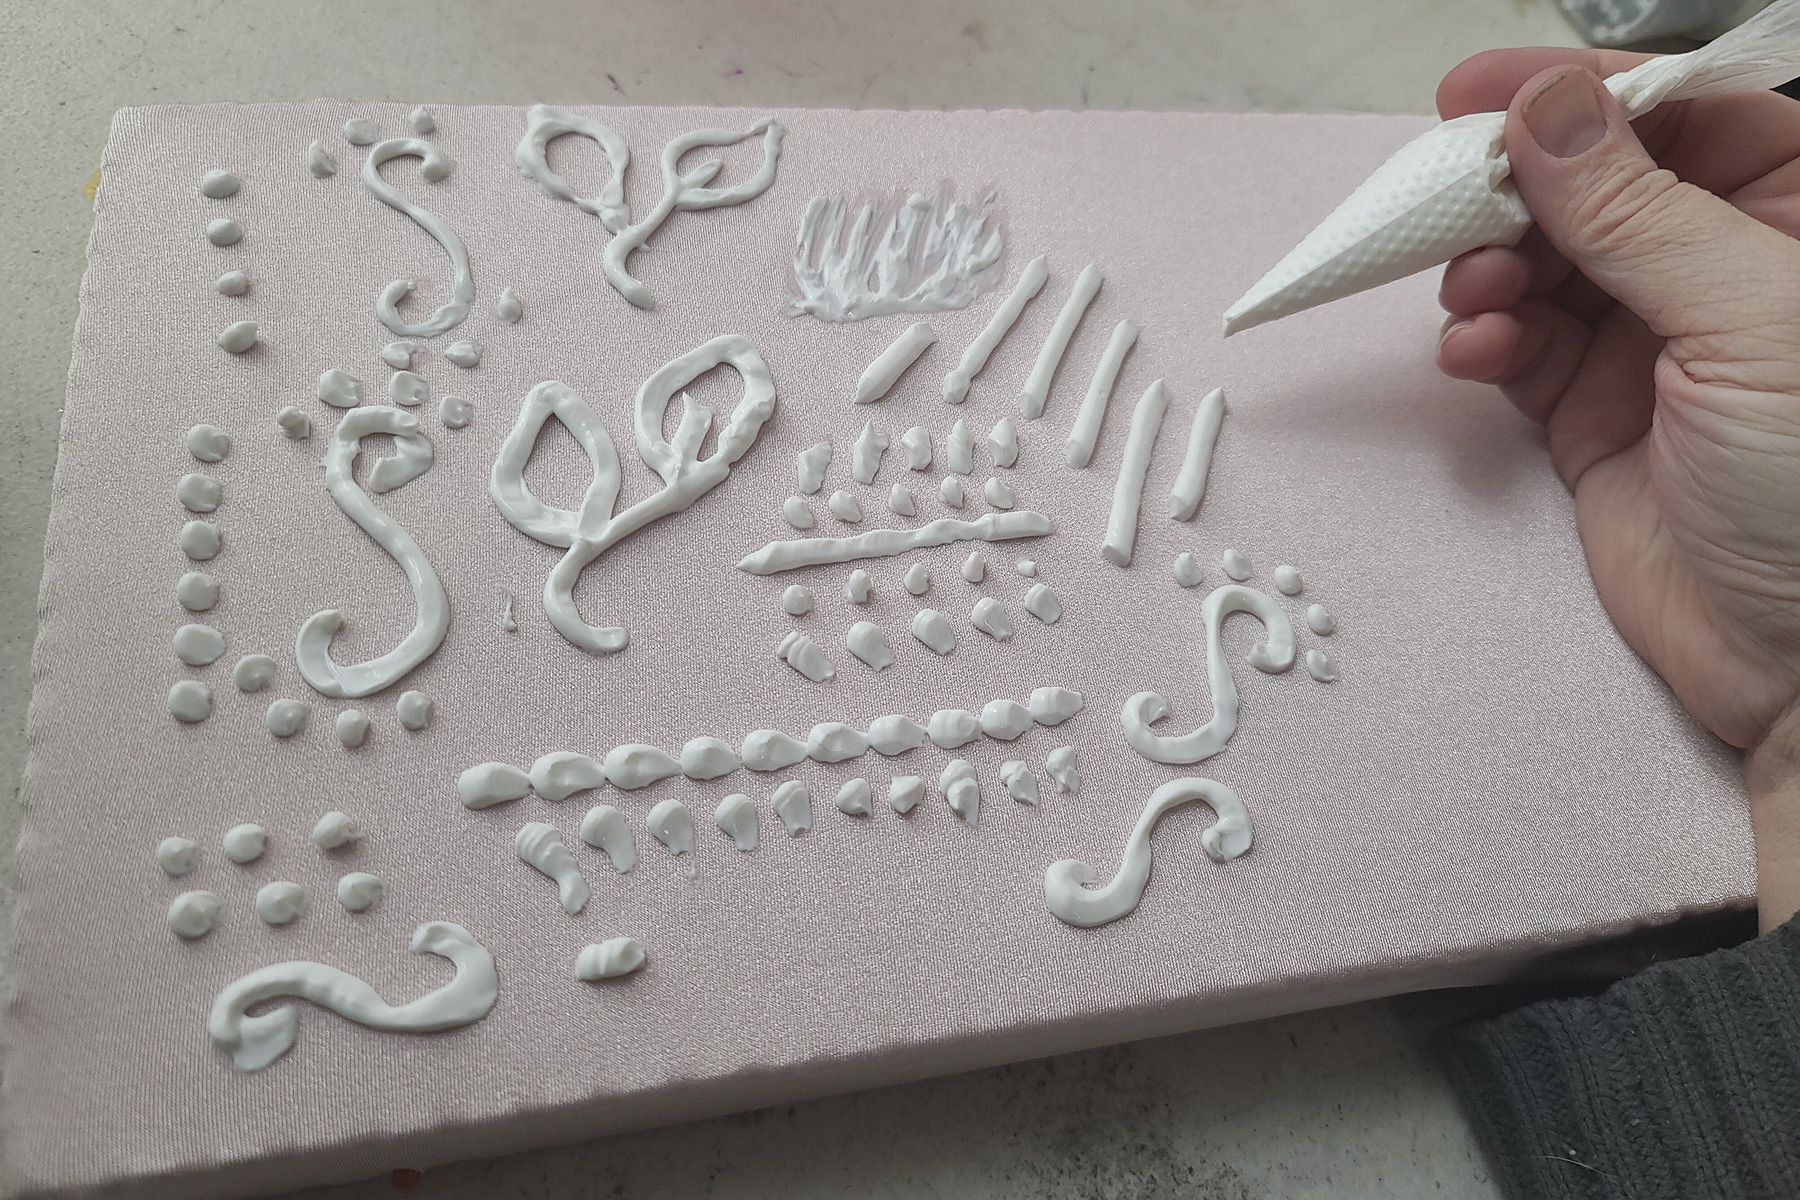 A pastry bag of caulking being used to pipe designs onto pale pink spandex.